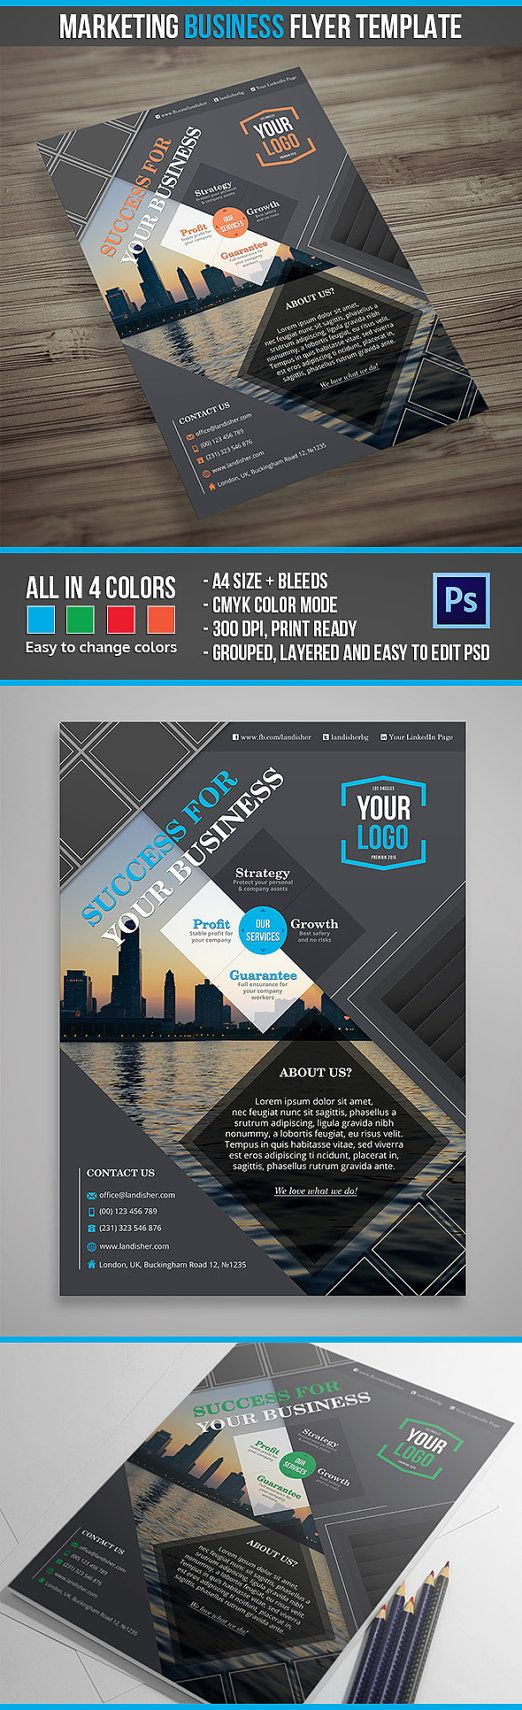 Graphic Design Inspiration · Marketing Business Flyer PSD Template   Easy  To Customize